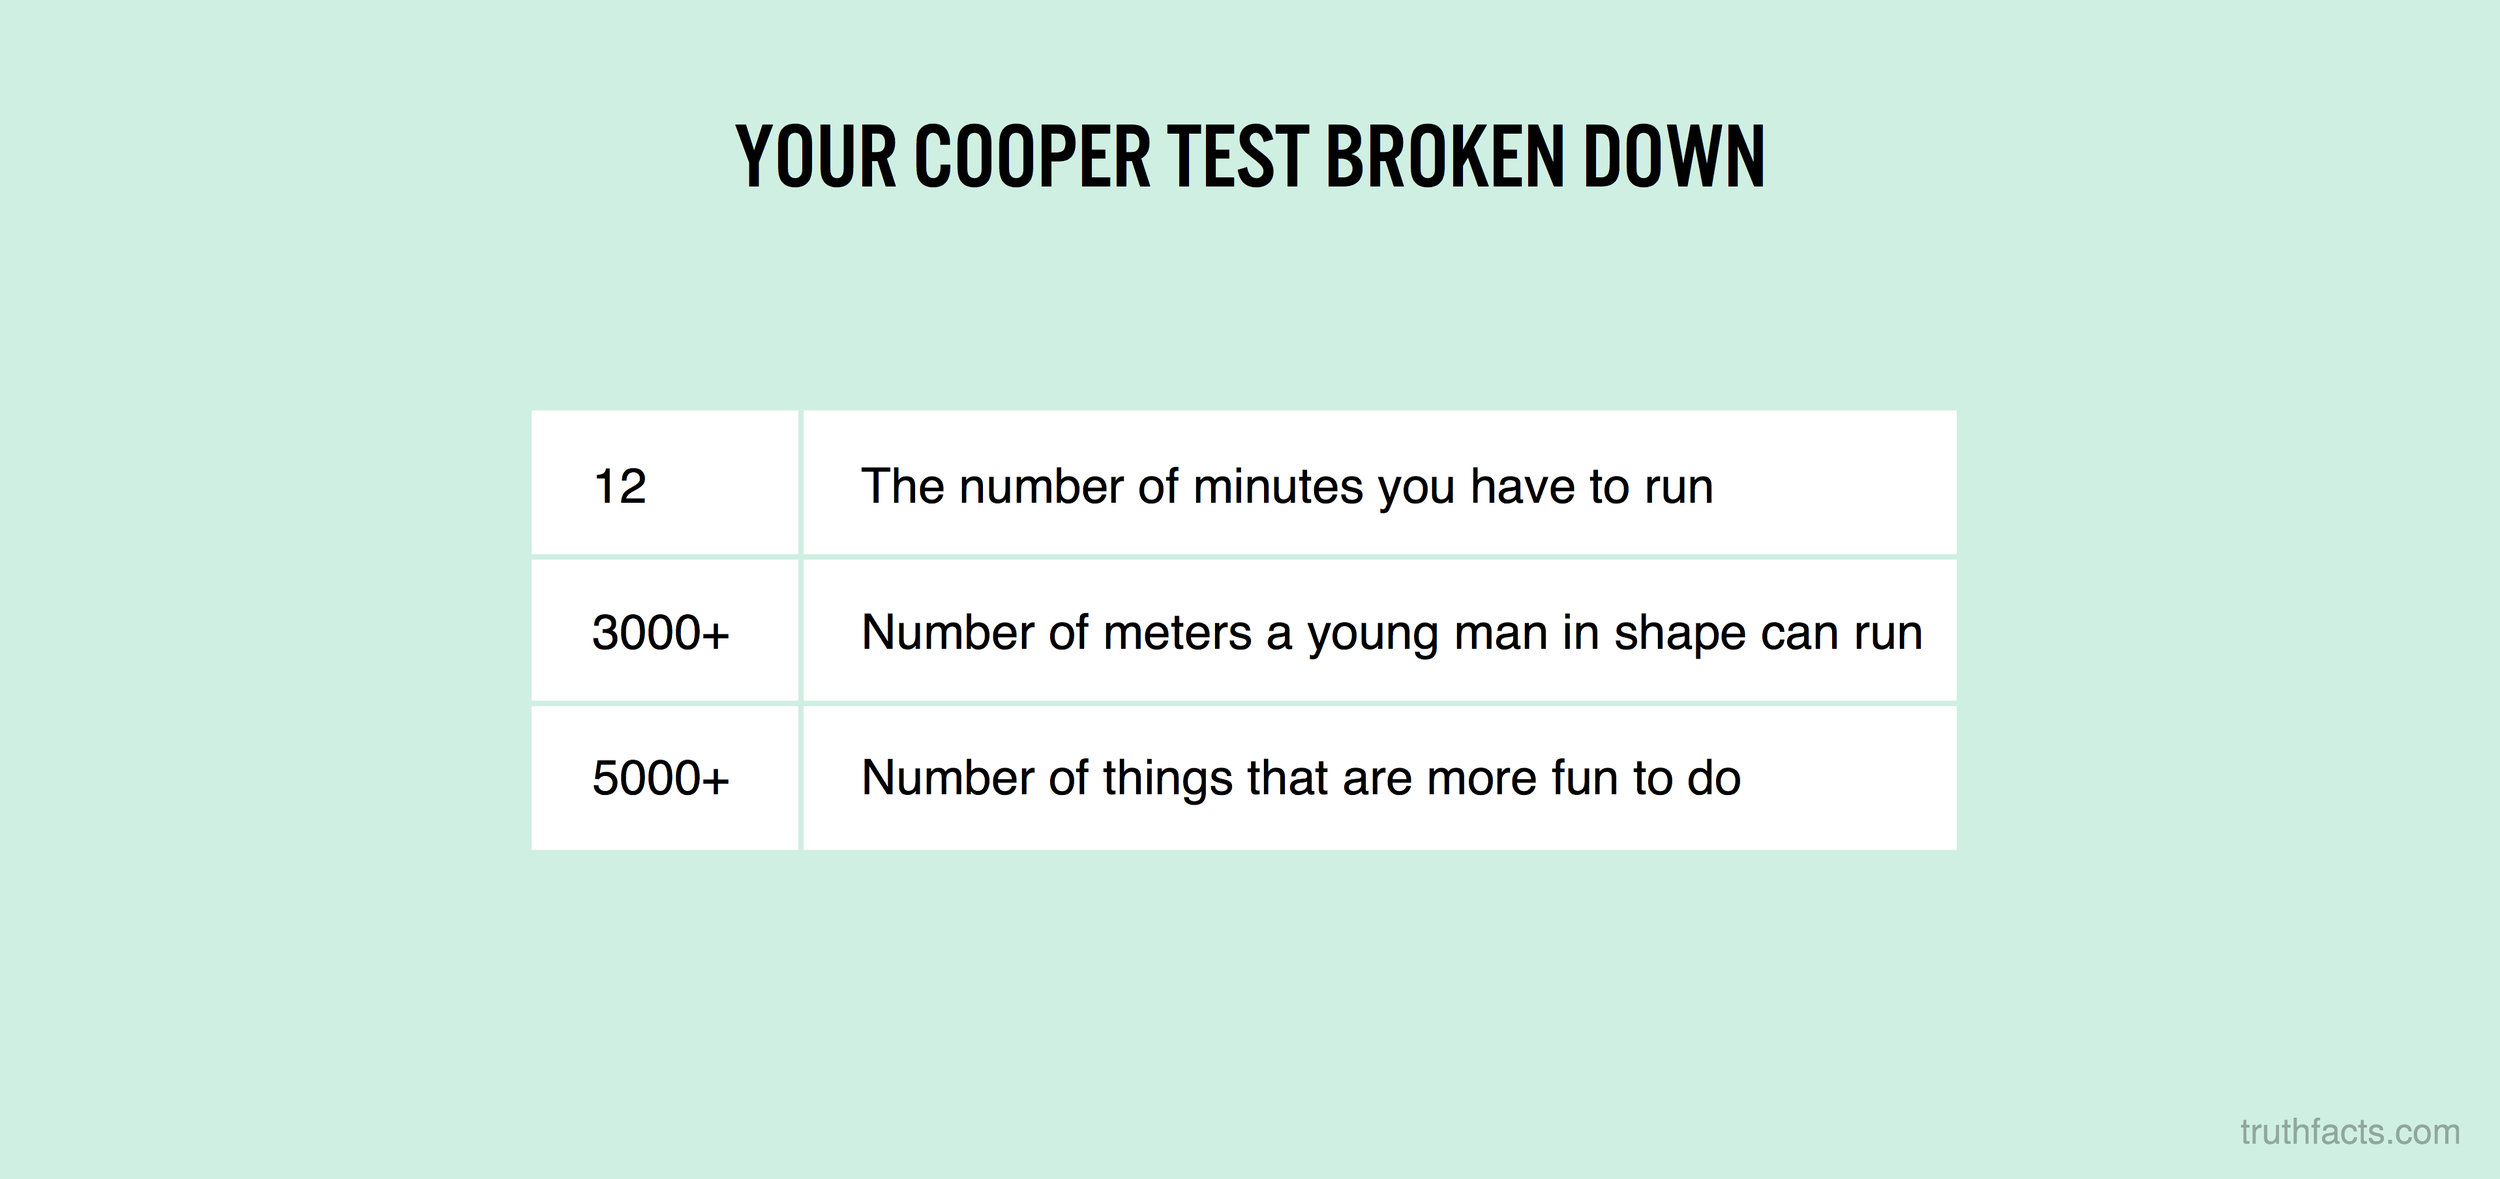 Your cooper test broken down